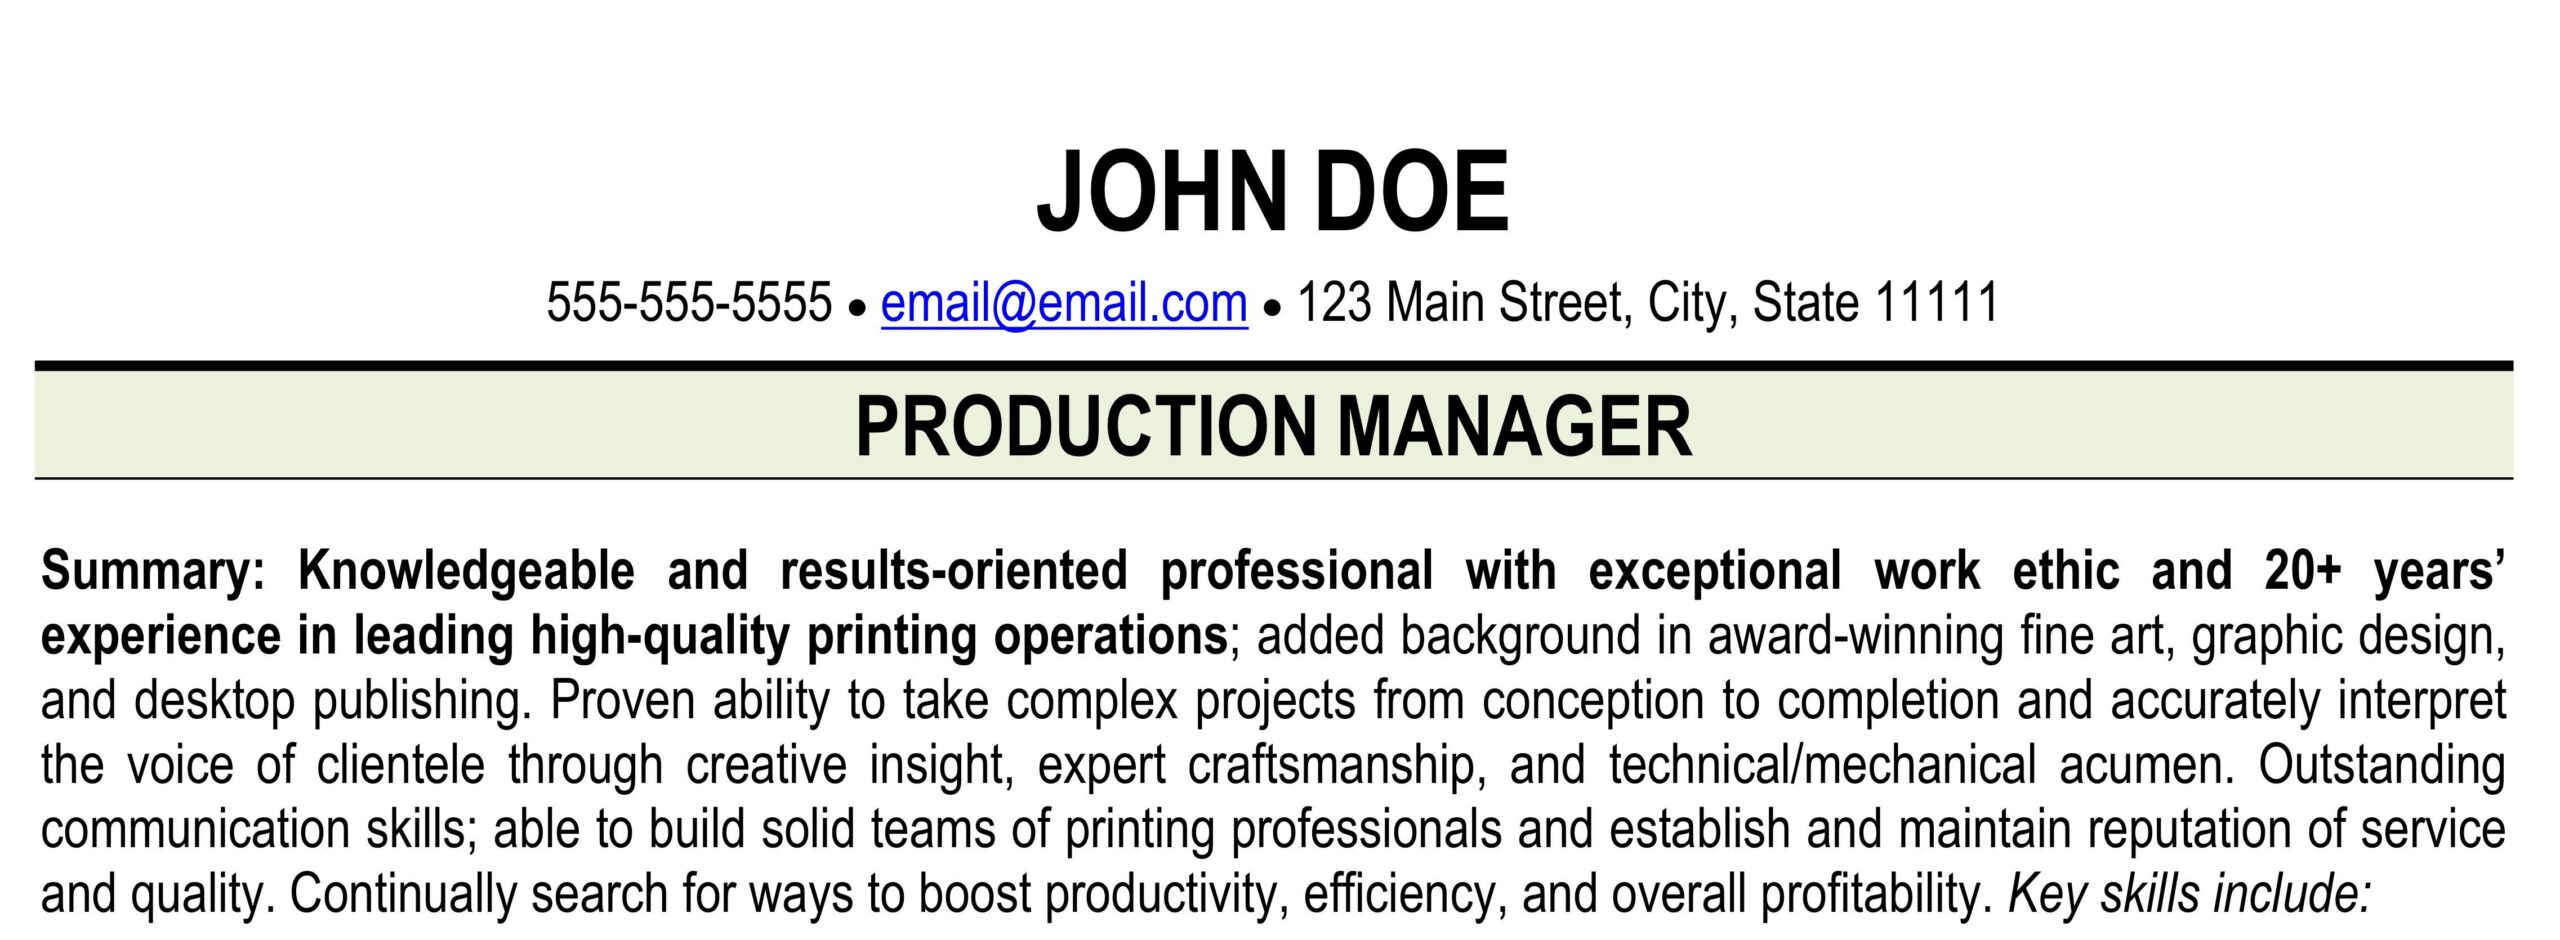 resume for printing industry print shop ihireprinting production examples geology Resume Print Production Resume Examples